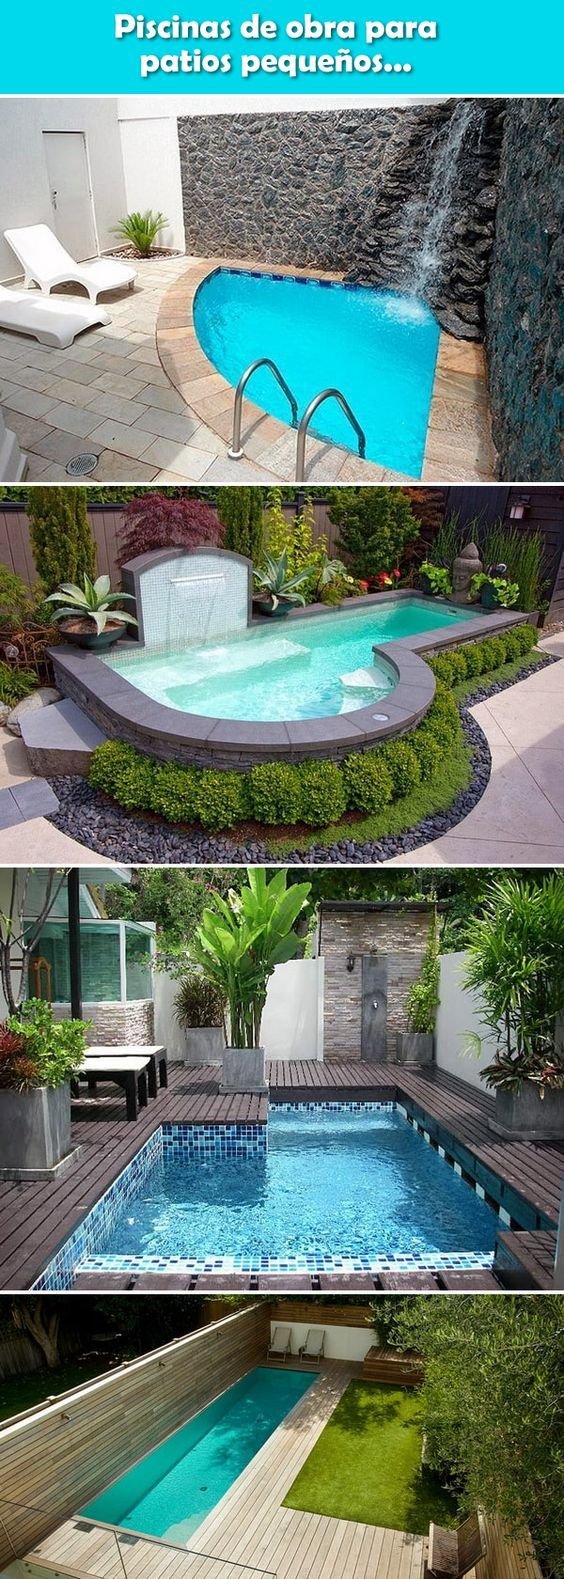 M s de 25 ideas incre bles sobre peque as piscinas en for Piscinas para patios pequenos